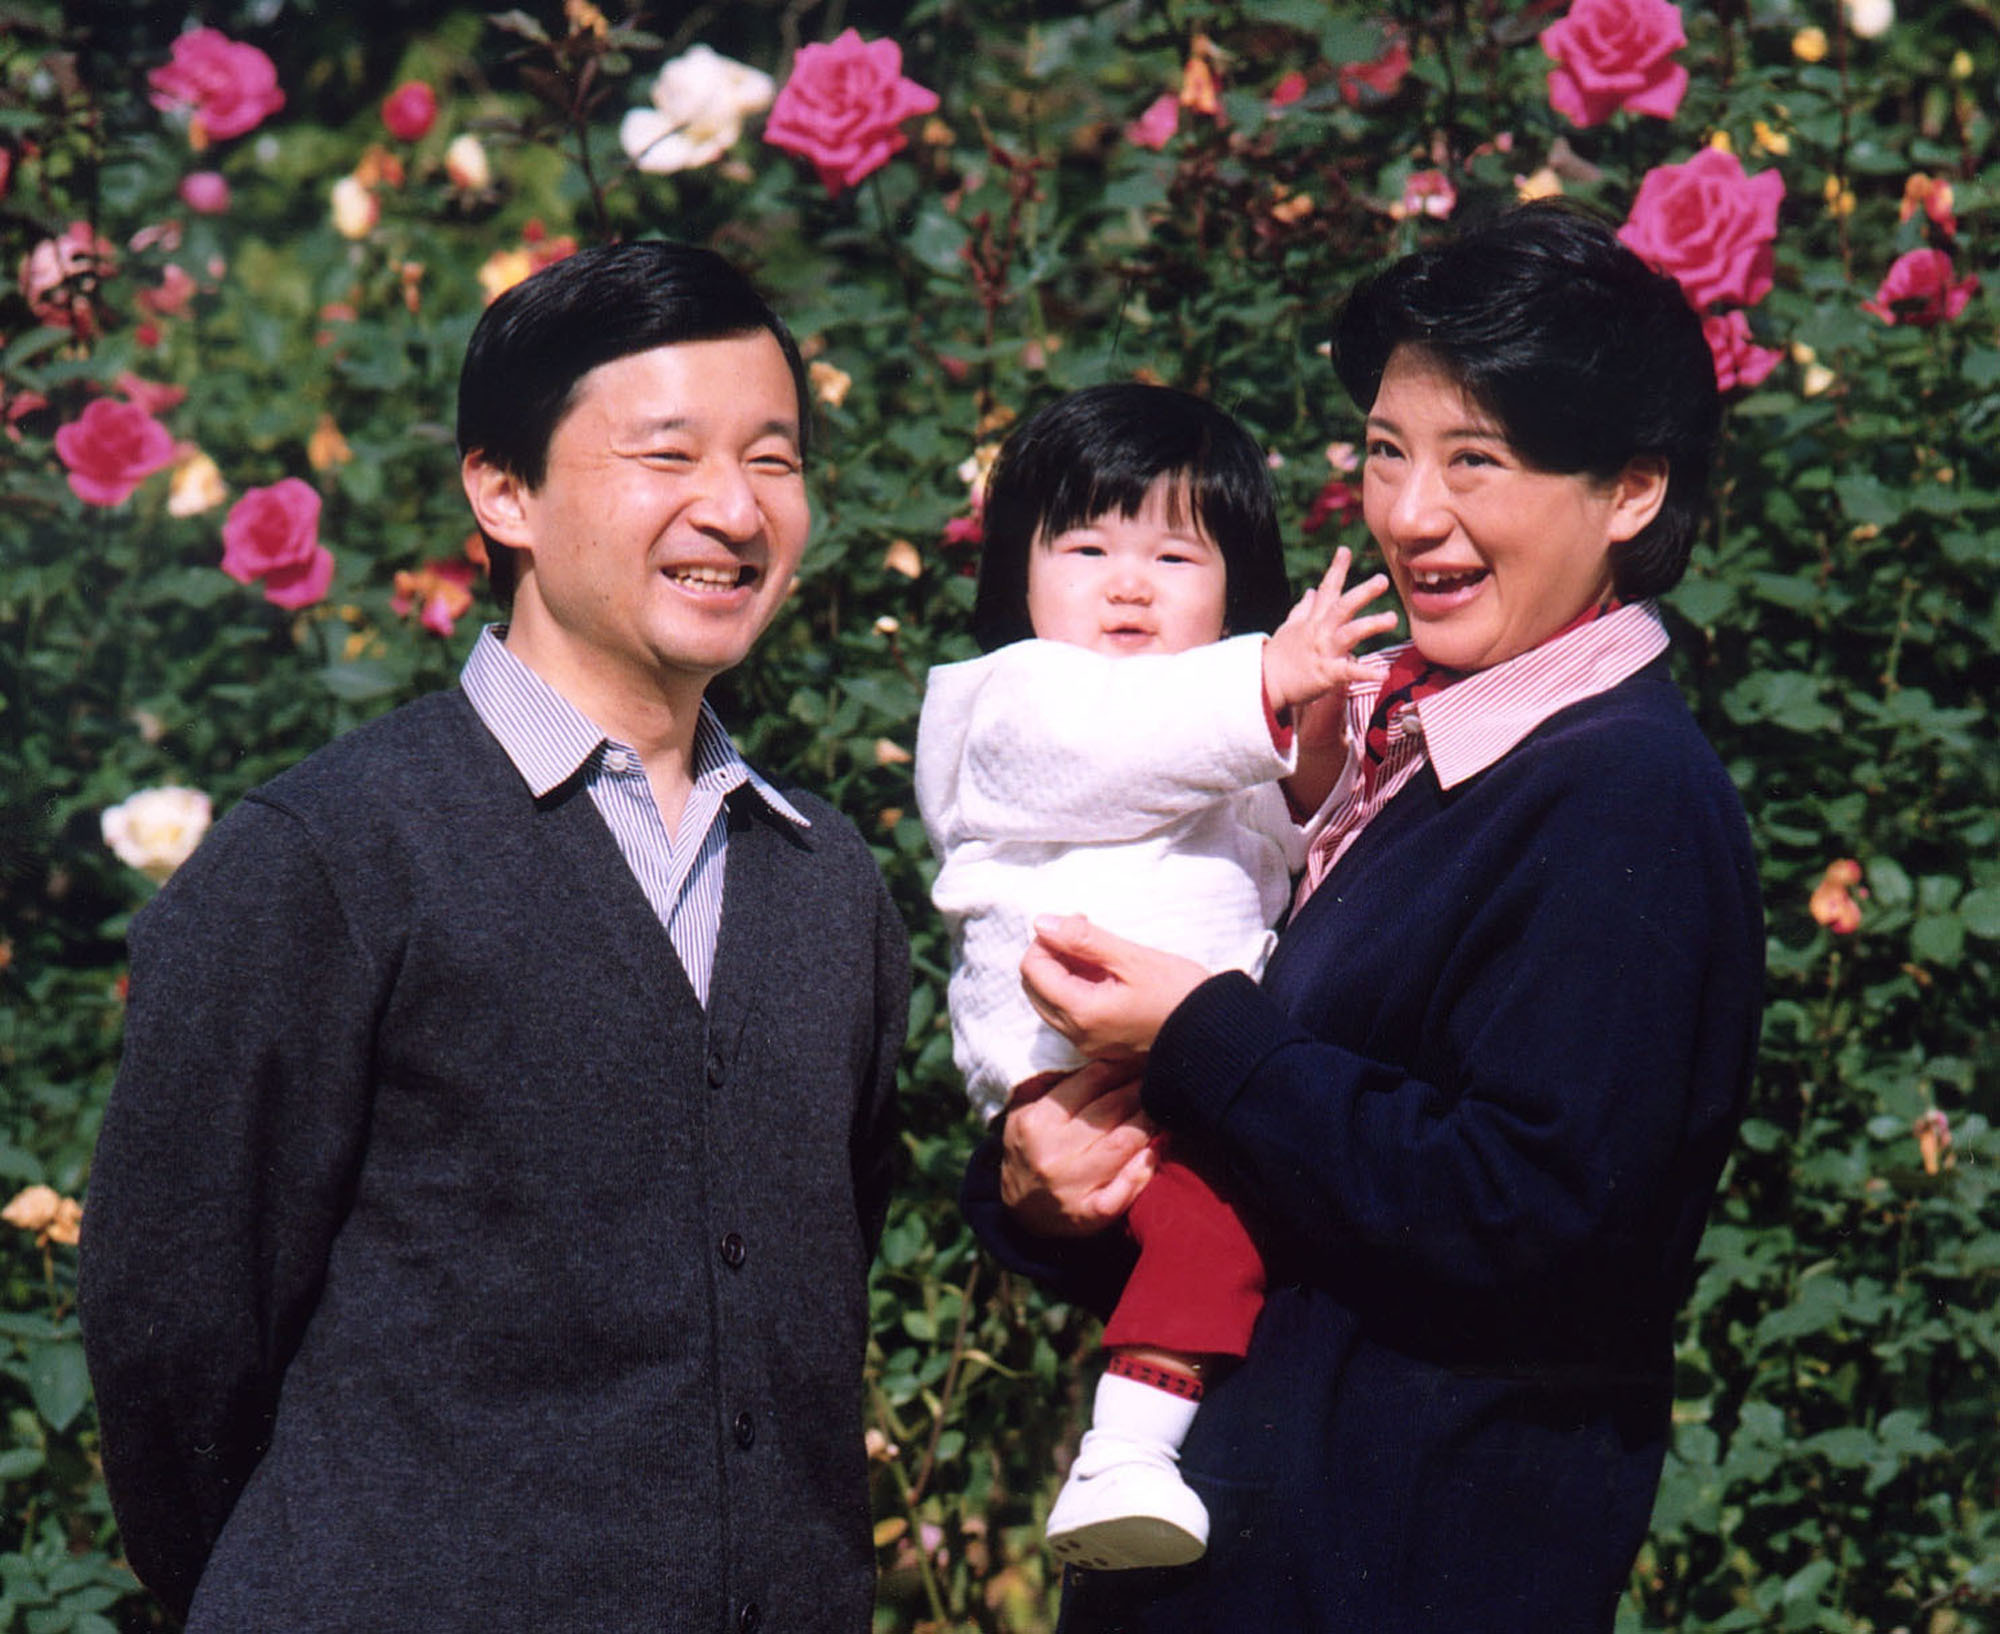 Crown Prince Naruhito and Crown Princess Masako with their daughter, Princess Aiko, on the grounds of the Akasaka Estate in Tokyo on Nov. 19, 2002. | IMPERIAL HOUSEHOLD AGENCY / VIA KYODO